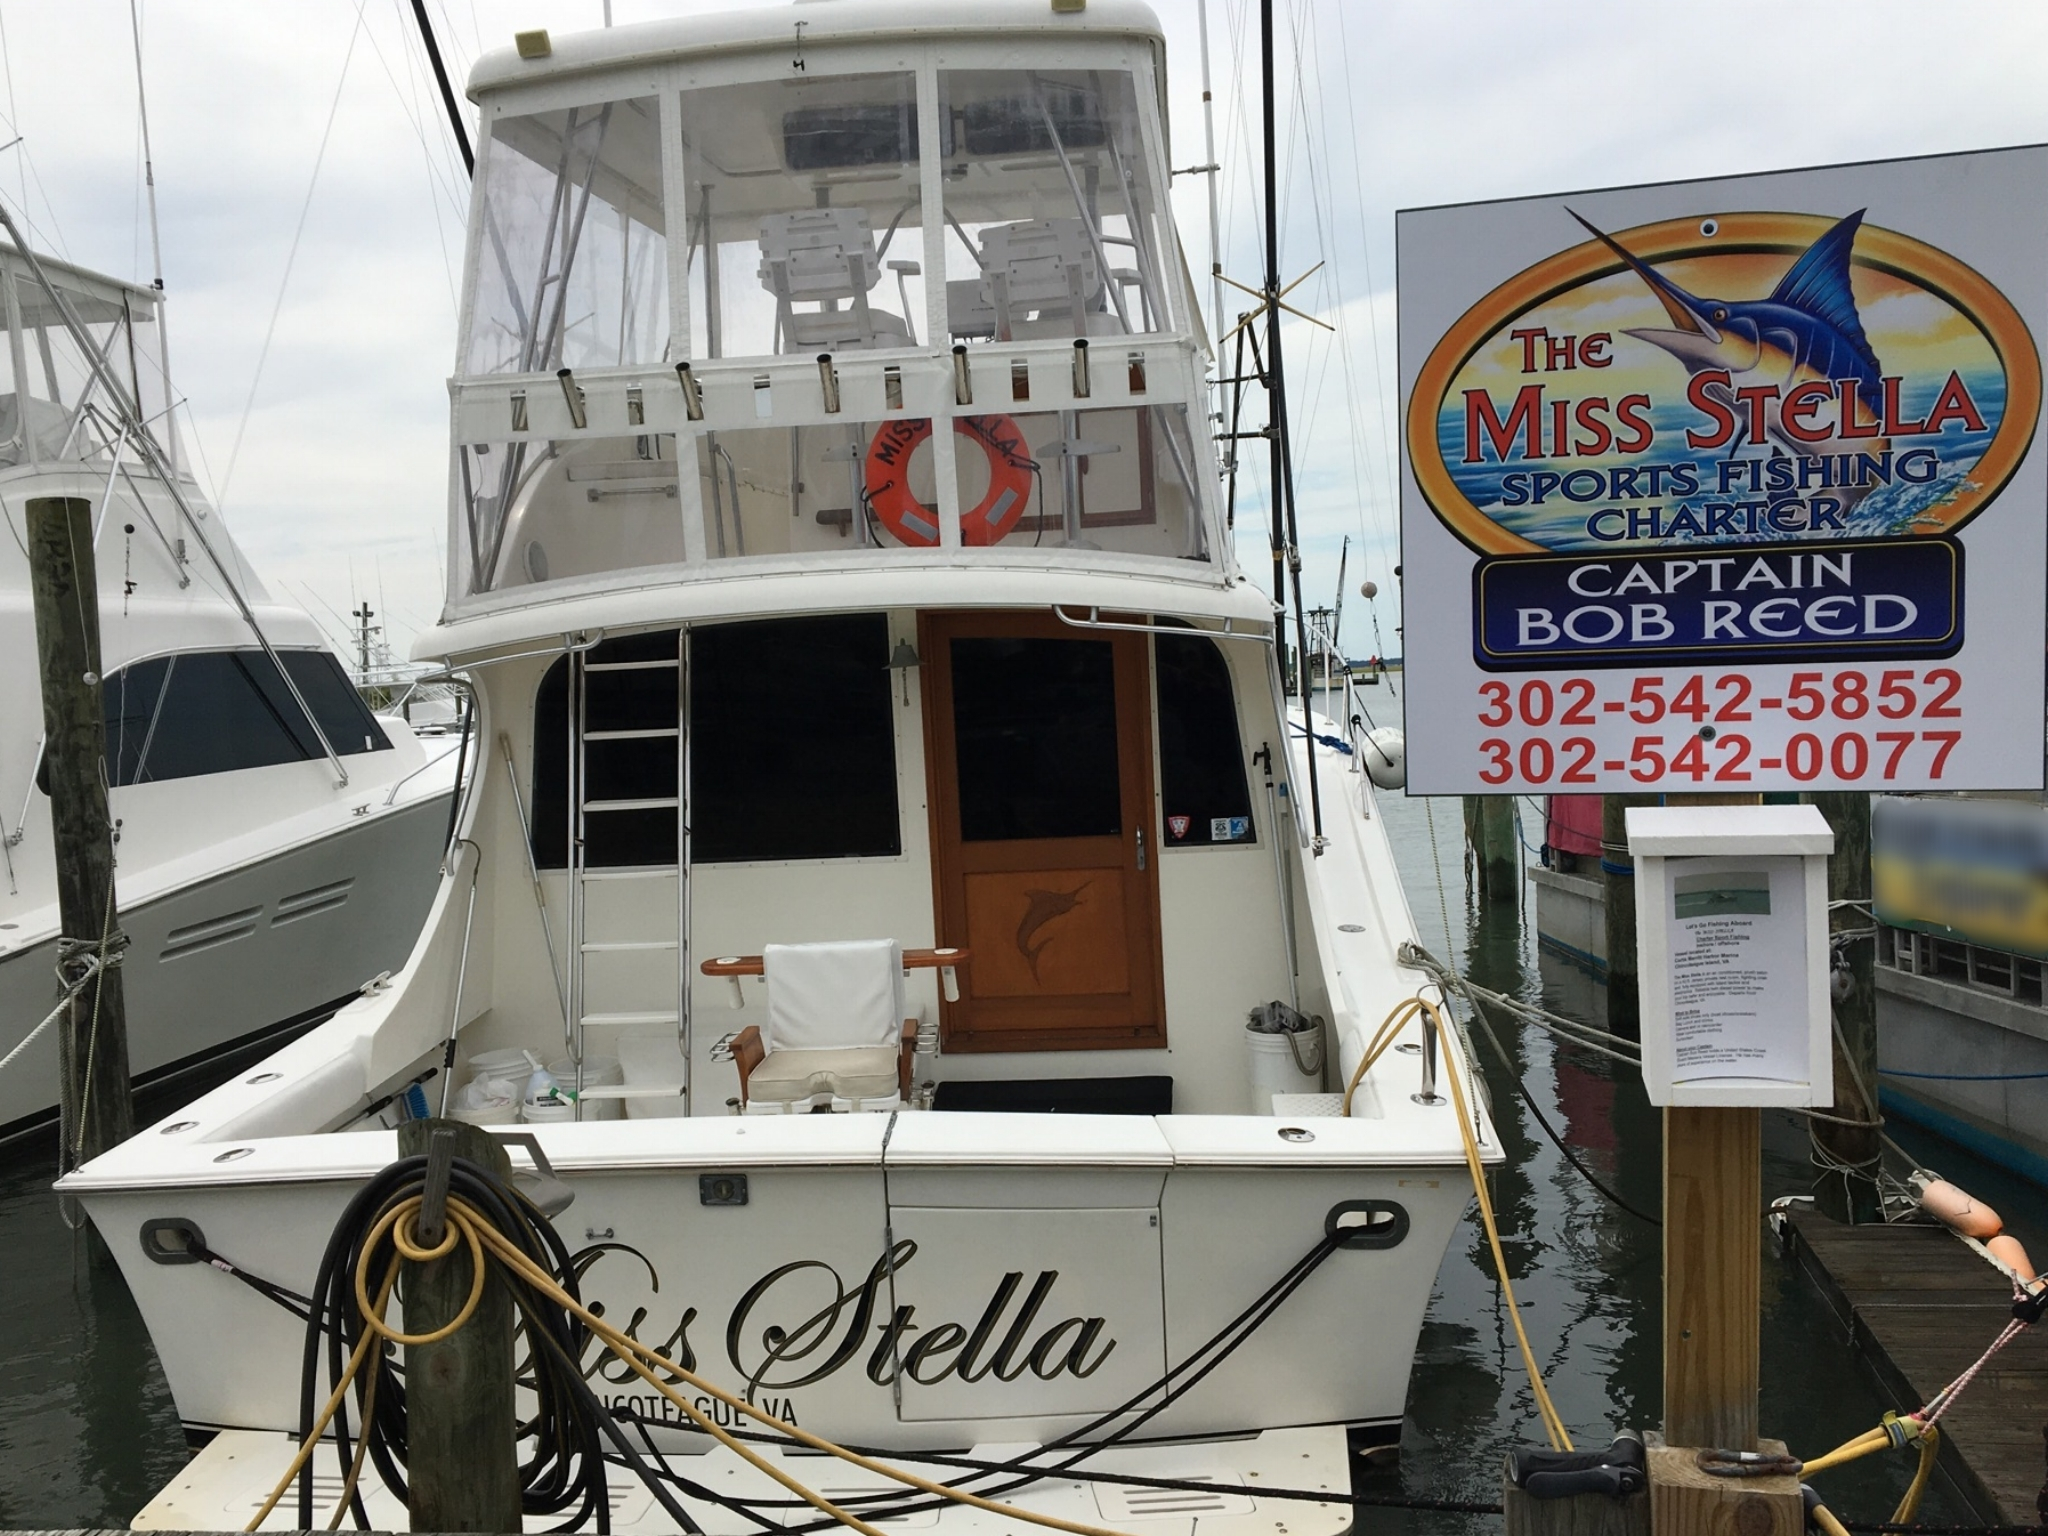 The Miss Stella docked before fishing trip off Chincoteague, Virginia